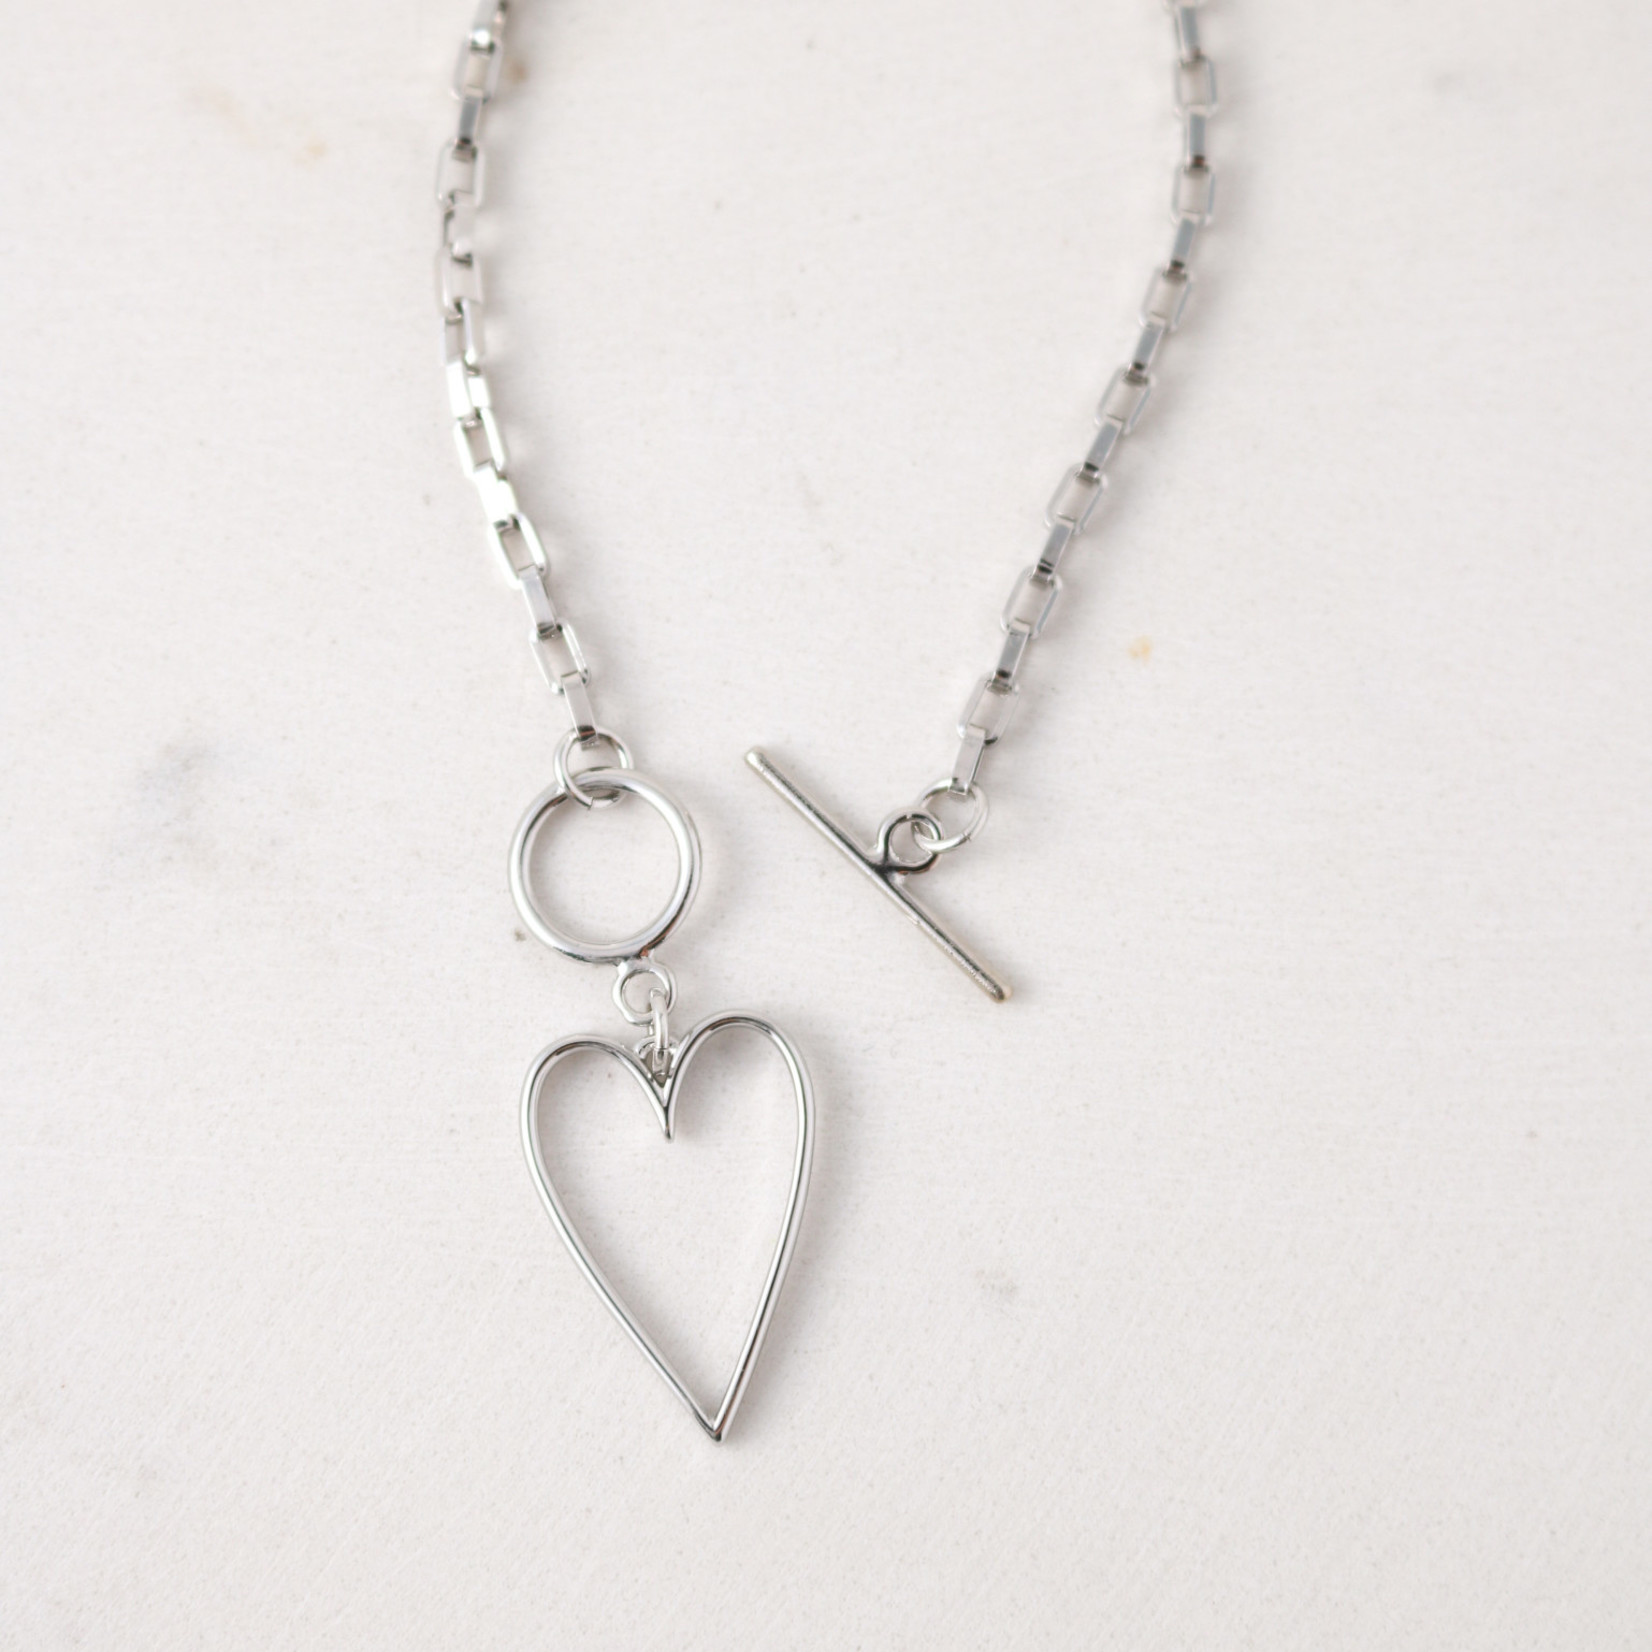 Lovestruck Heart Necklace Silver